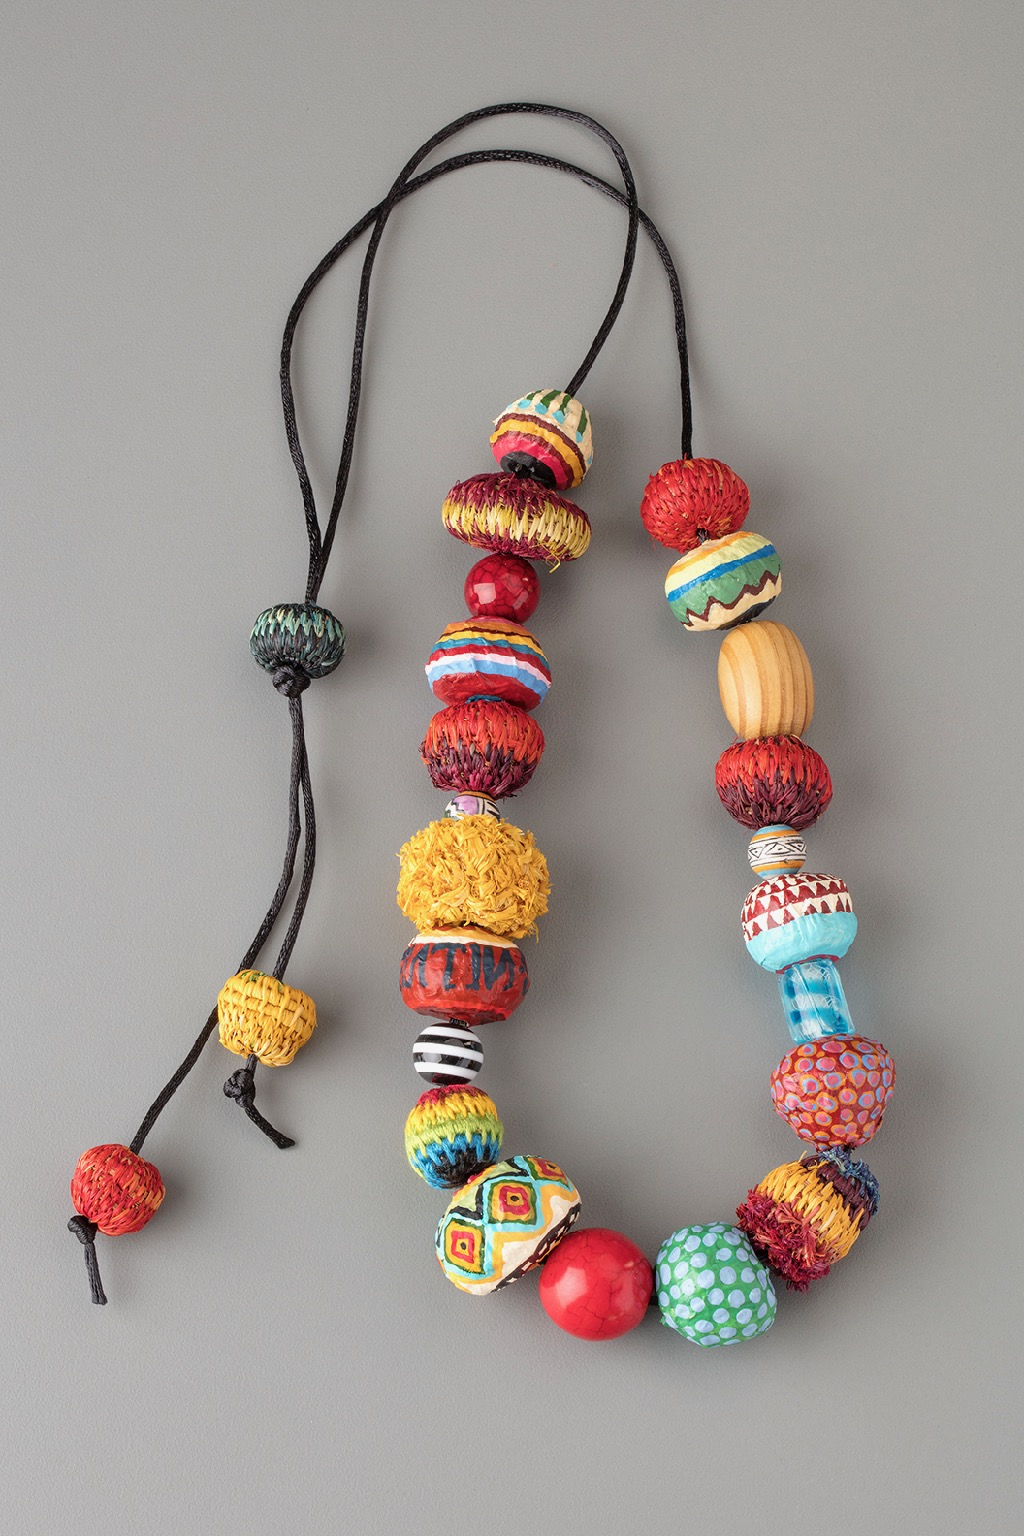 2018 Peru design necklace.jpg